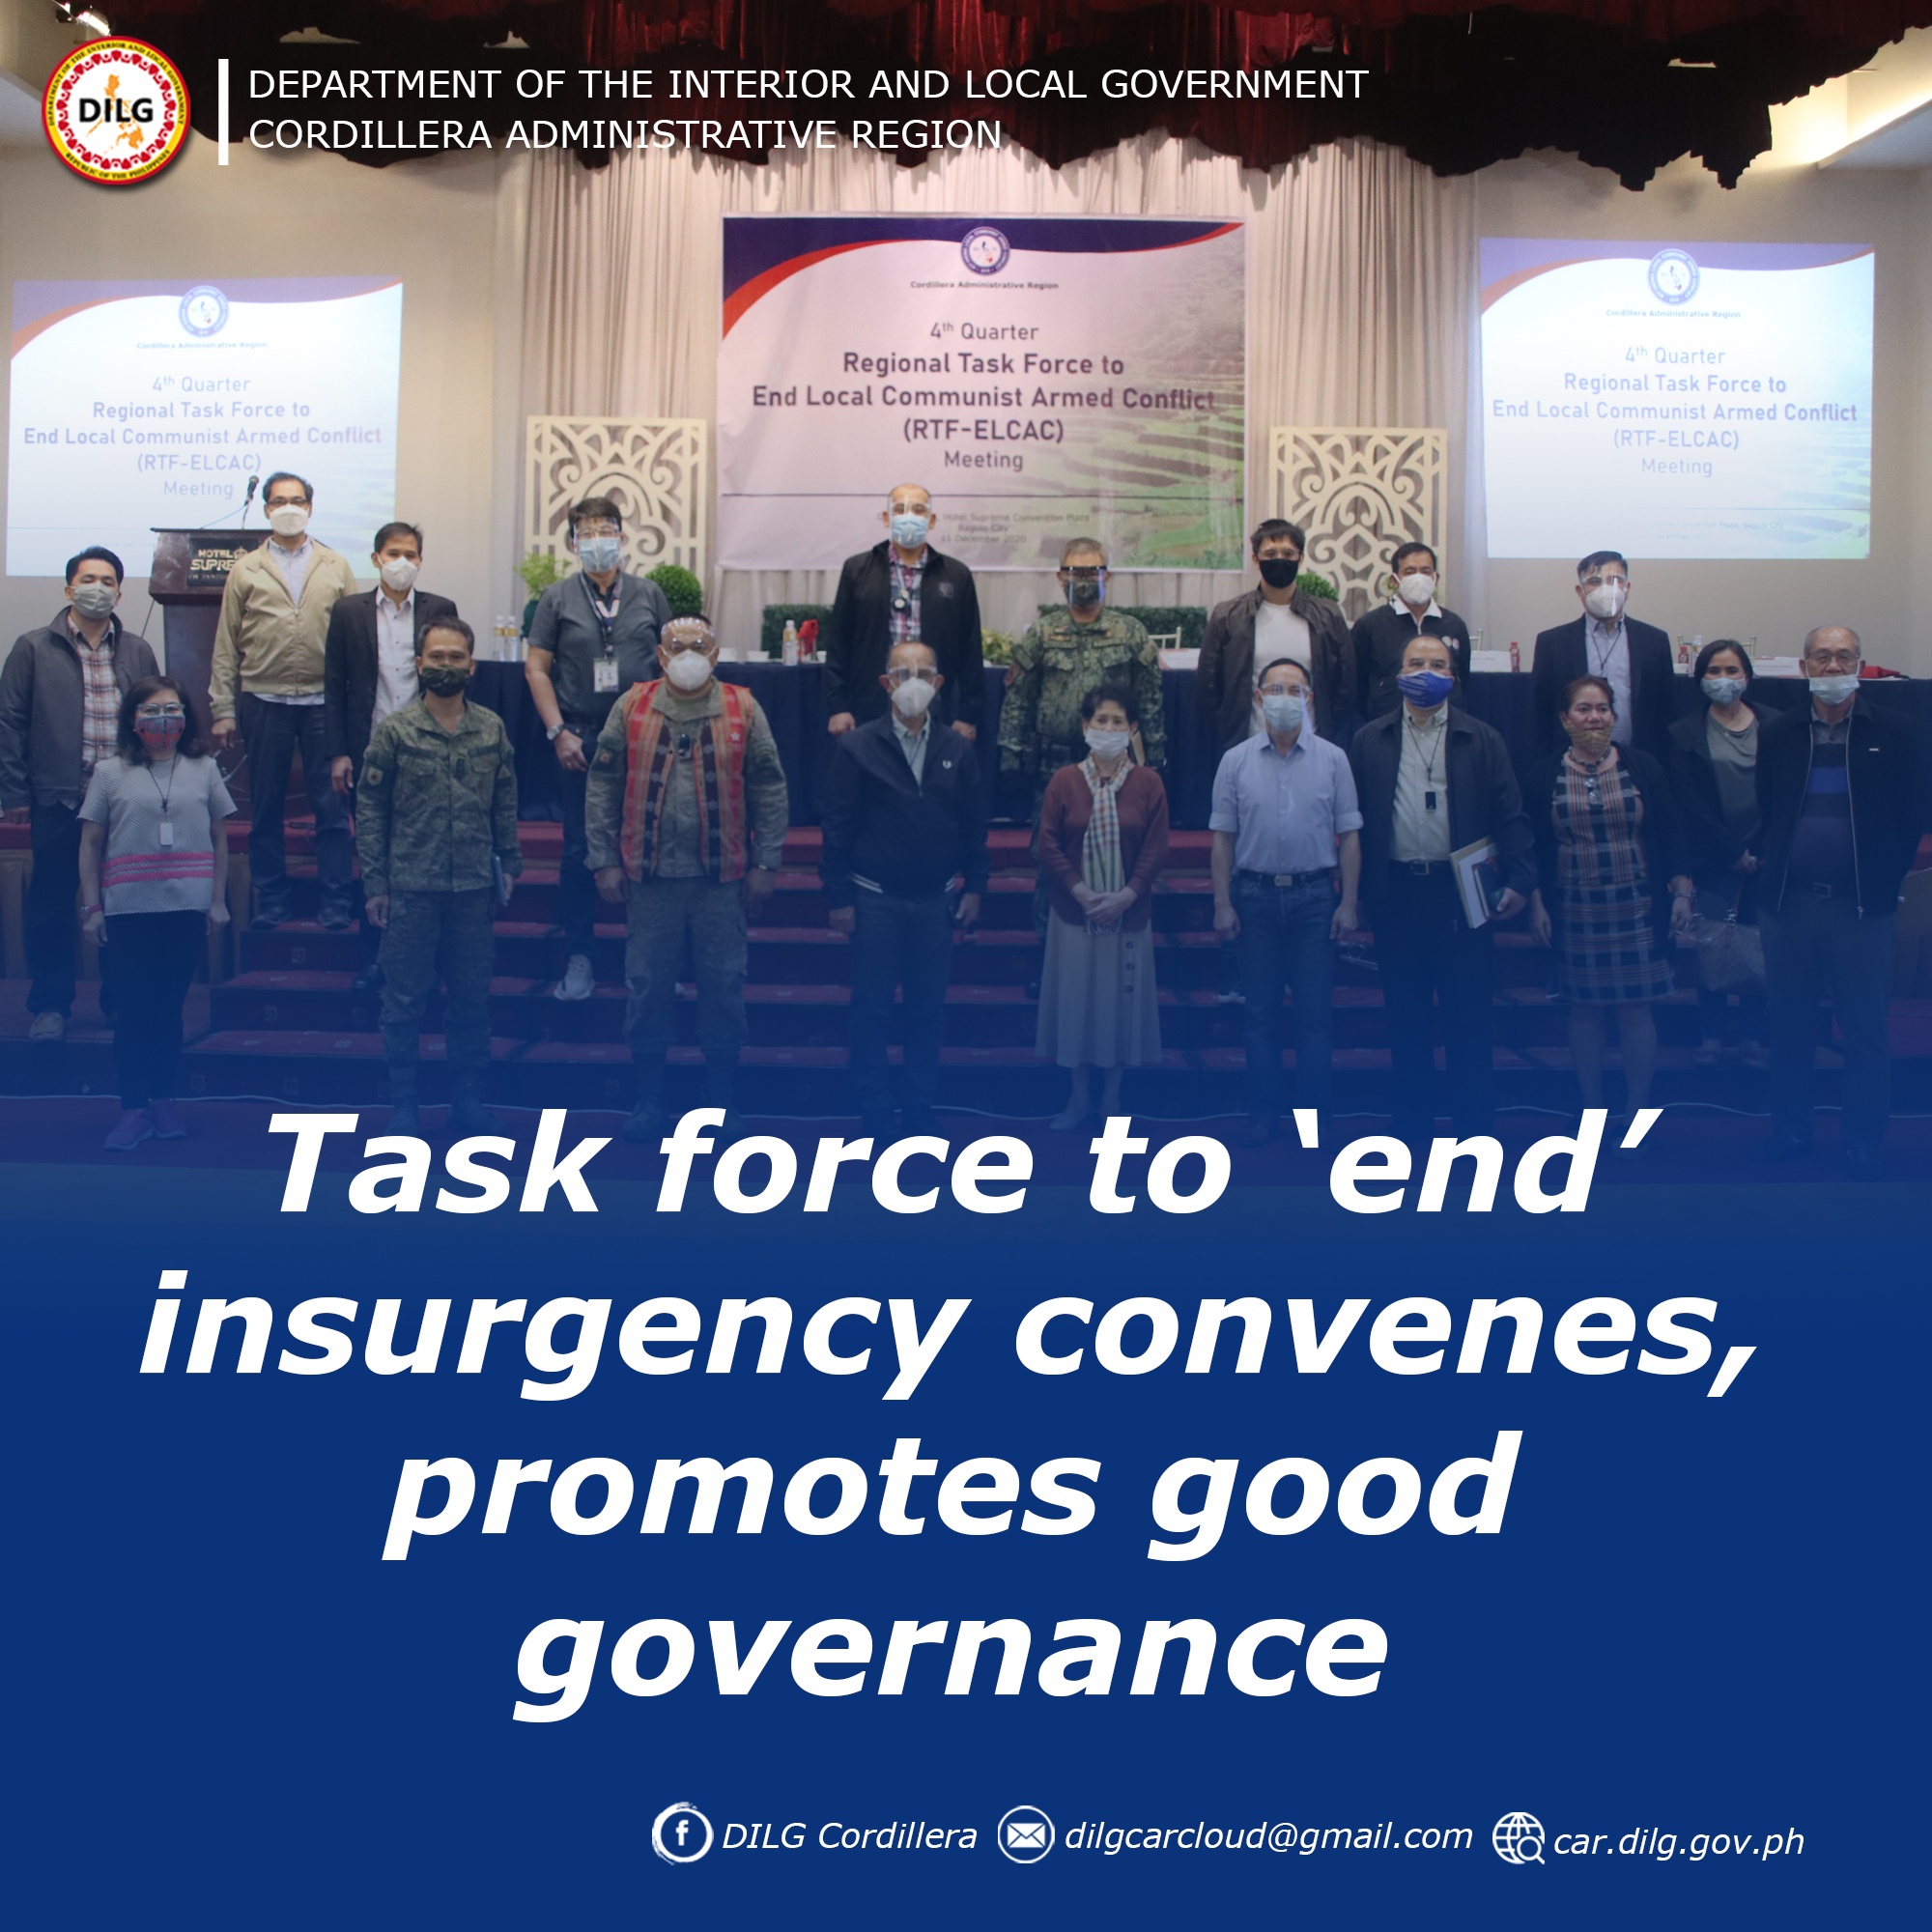 Task force to 'end' insurgency convenes, promotes good governance